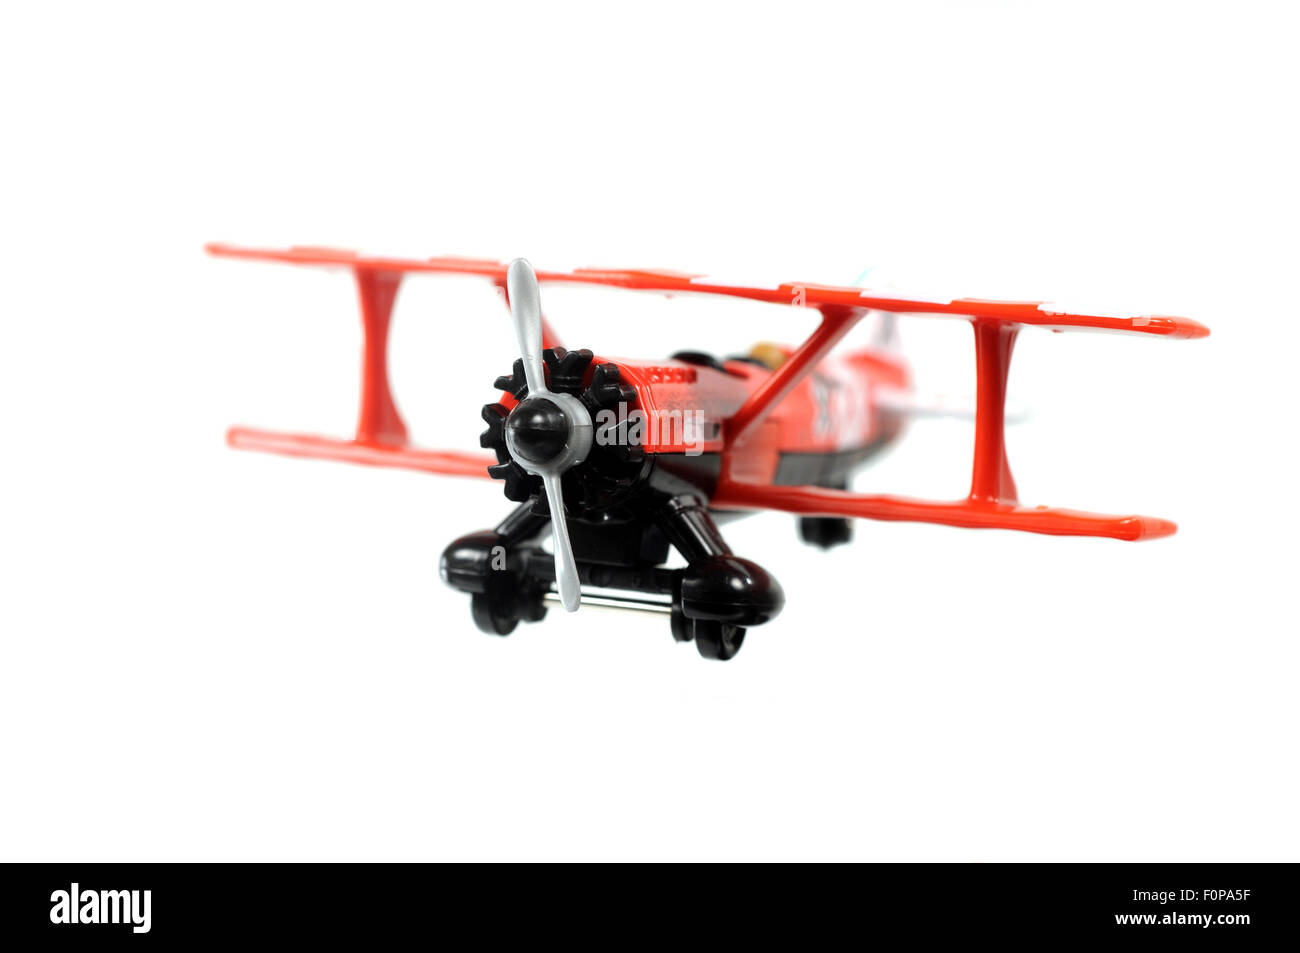 Toy red bi-plane  isolated on a white background - Stock Image